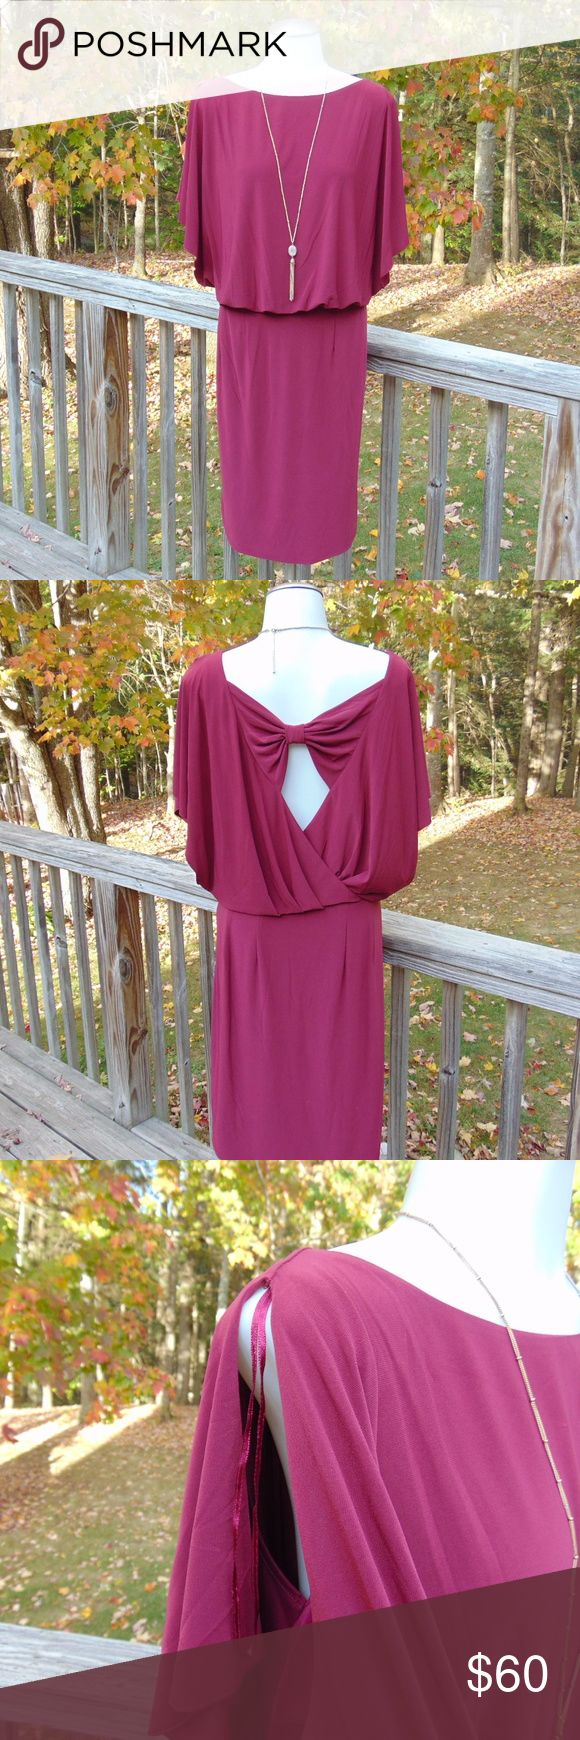 *NWT Size 12W Jessica Simpson Dress This gorgeous burgundy Jessica Simpson Dress is NEW WITH TAGS! The color of this dress goes PERFECT with all of the Fall colors! The only flaws are a few snags on one of the shoulders and a small snag on the front, very hard to see but 2 of the pics posted show the snags (bought like this). This dress has a very classy slit short sleeve, along with an adorable back with so much style! Knee length. Size: 12W Original Price: $118 *Sorry ladies, necklace not…